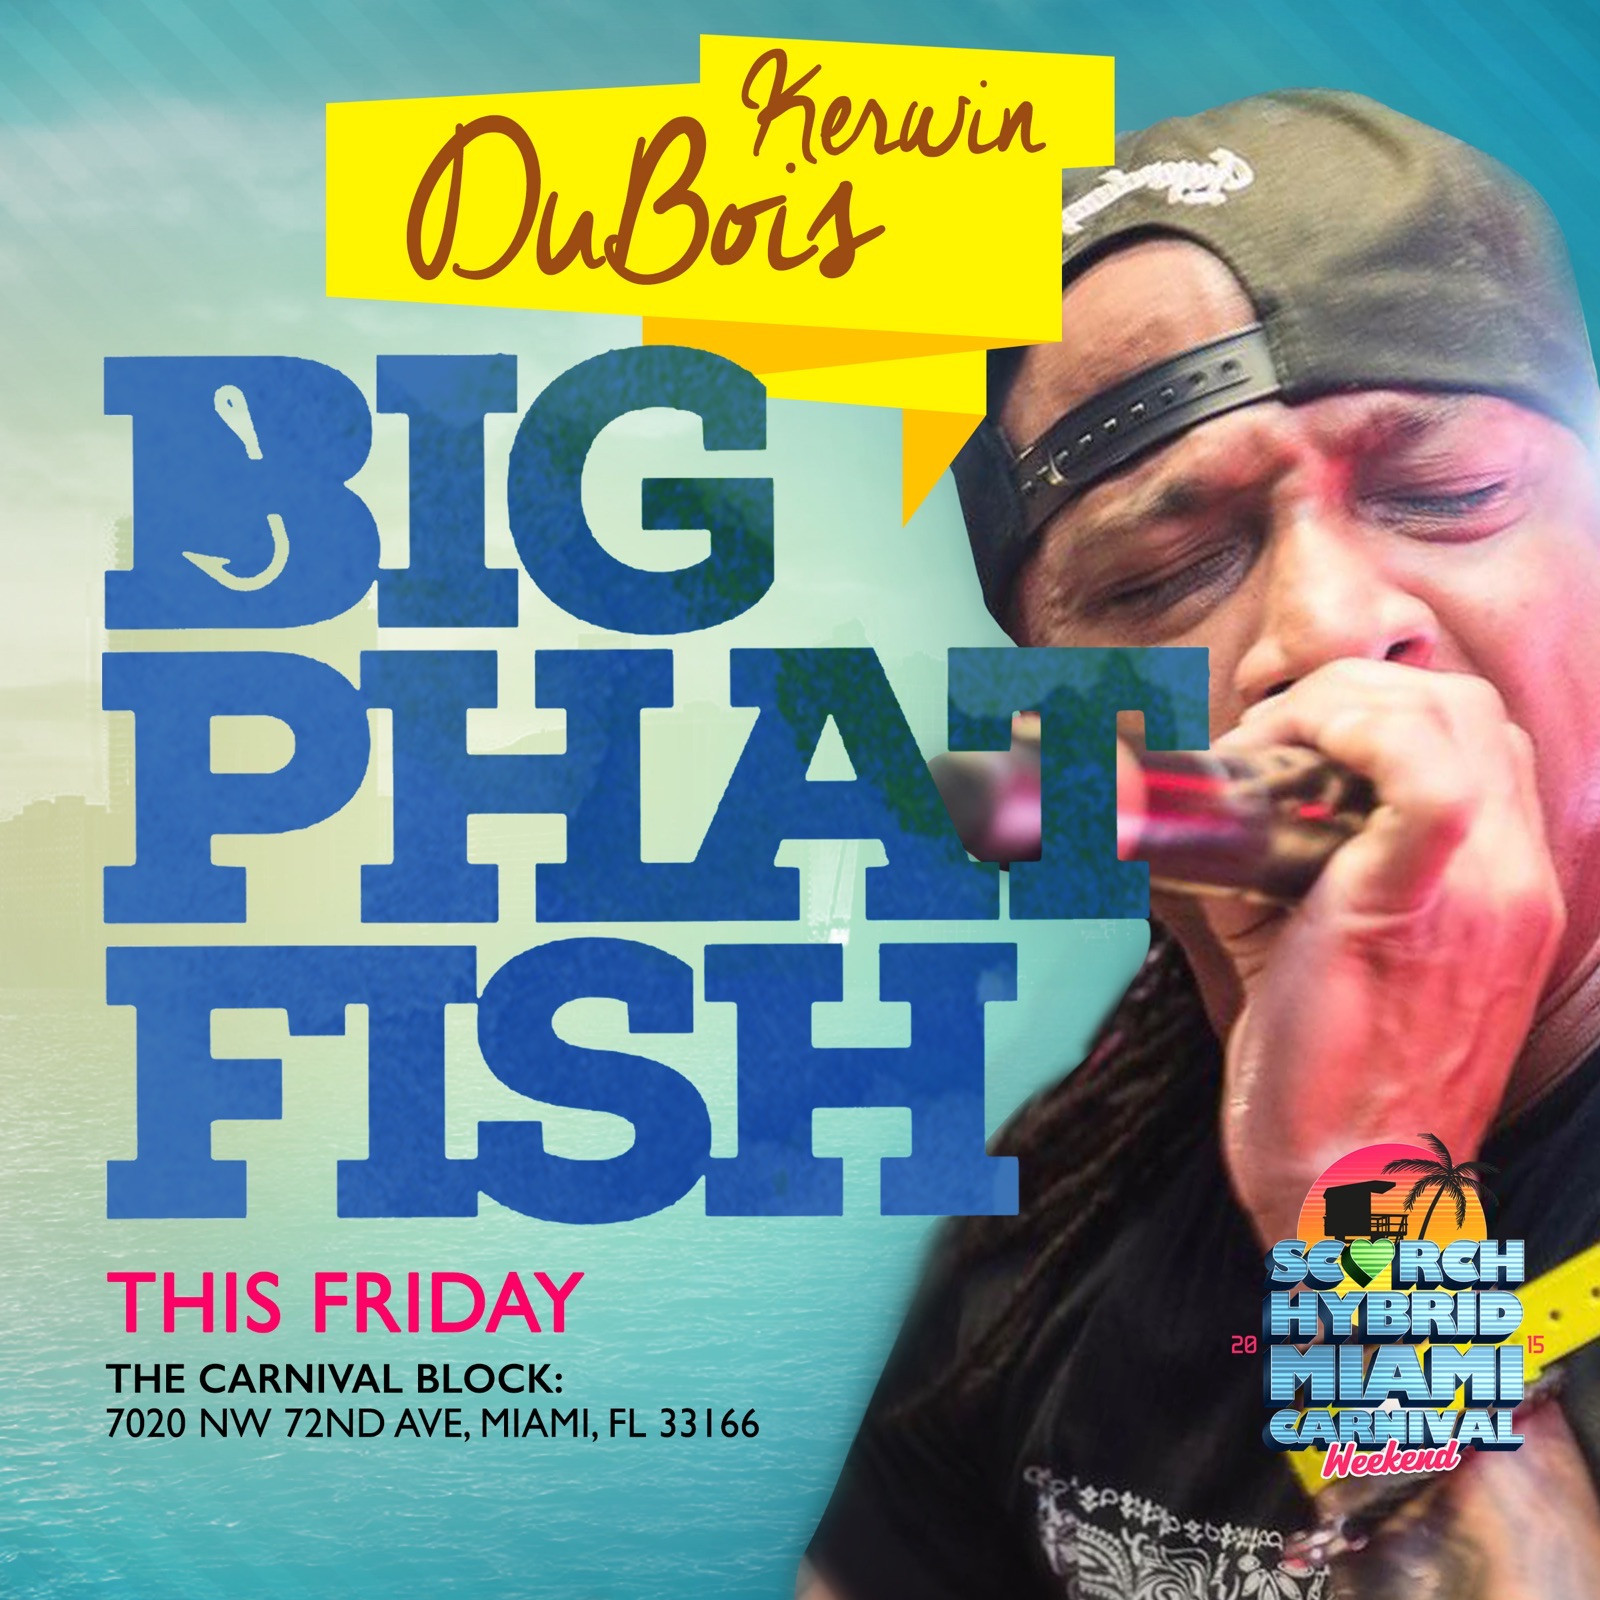 Tickets for Big Phat Fish Anniversary W Kerwin Dubois in Doral from ShowClix